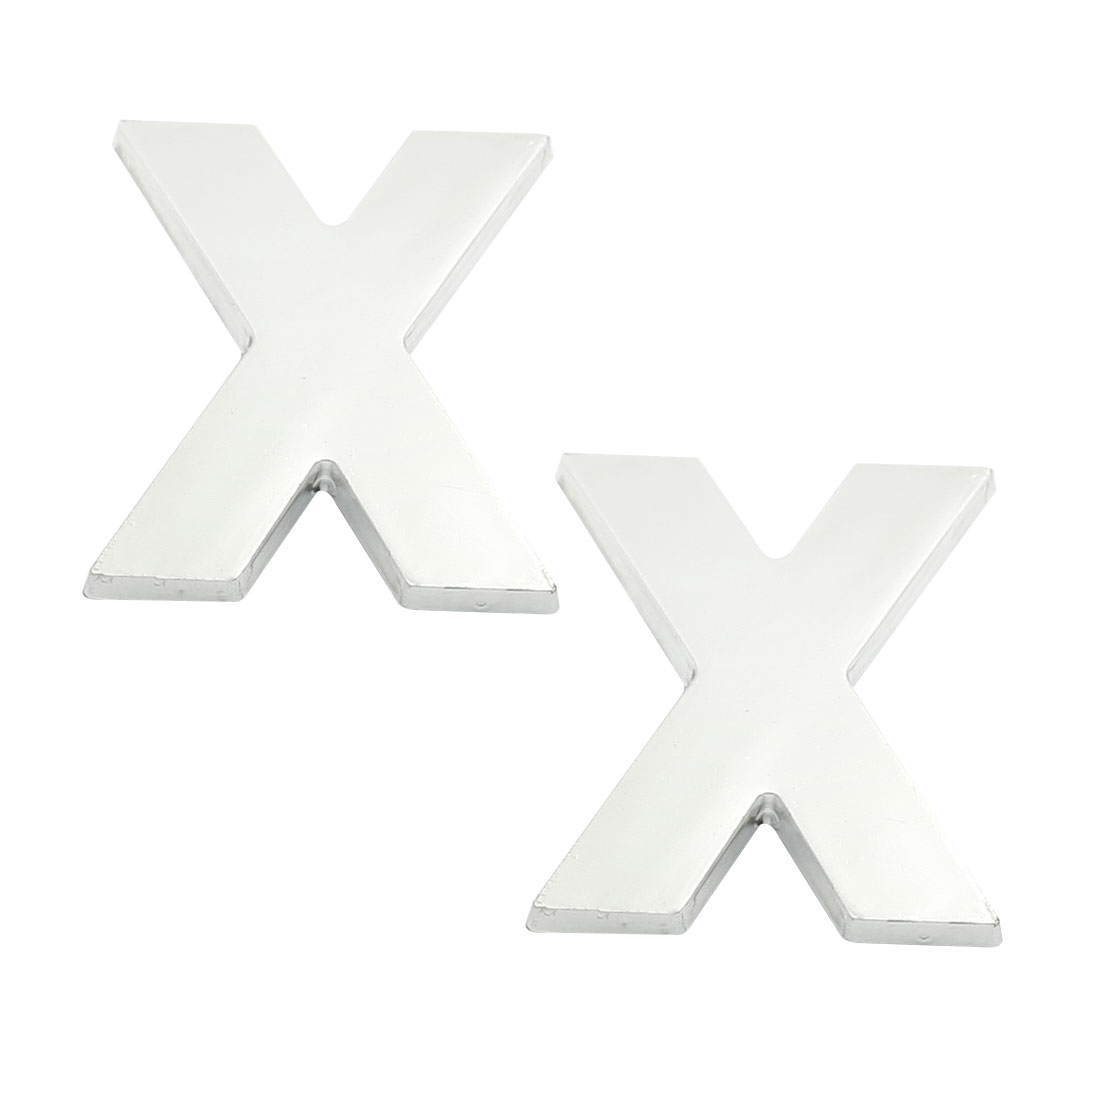 Car Truck Front Hood Letter X 3D Emblem Badge Sticker Silver Tone 2 Pcs